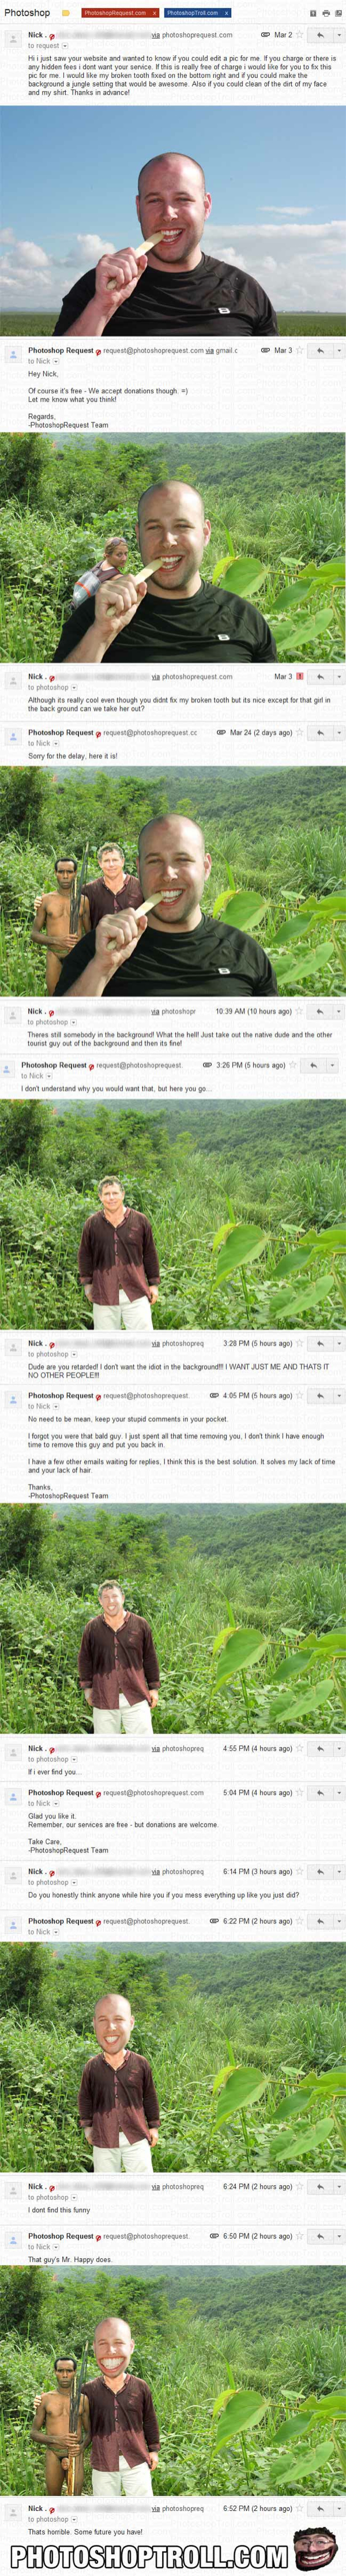 Photoshop Troll jungle